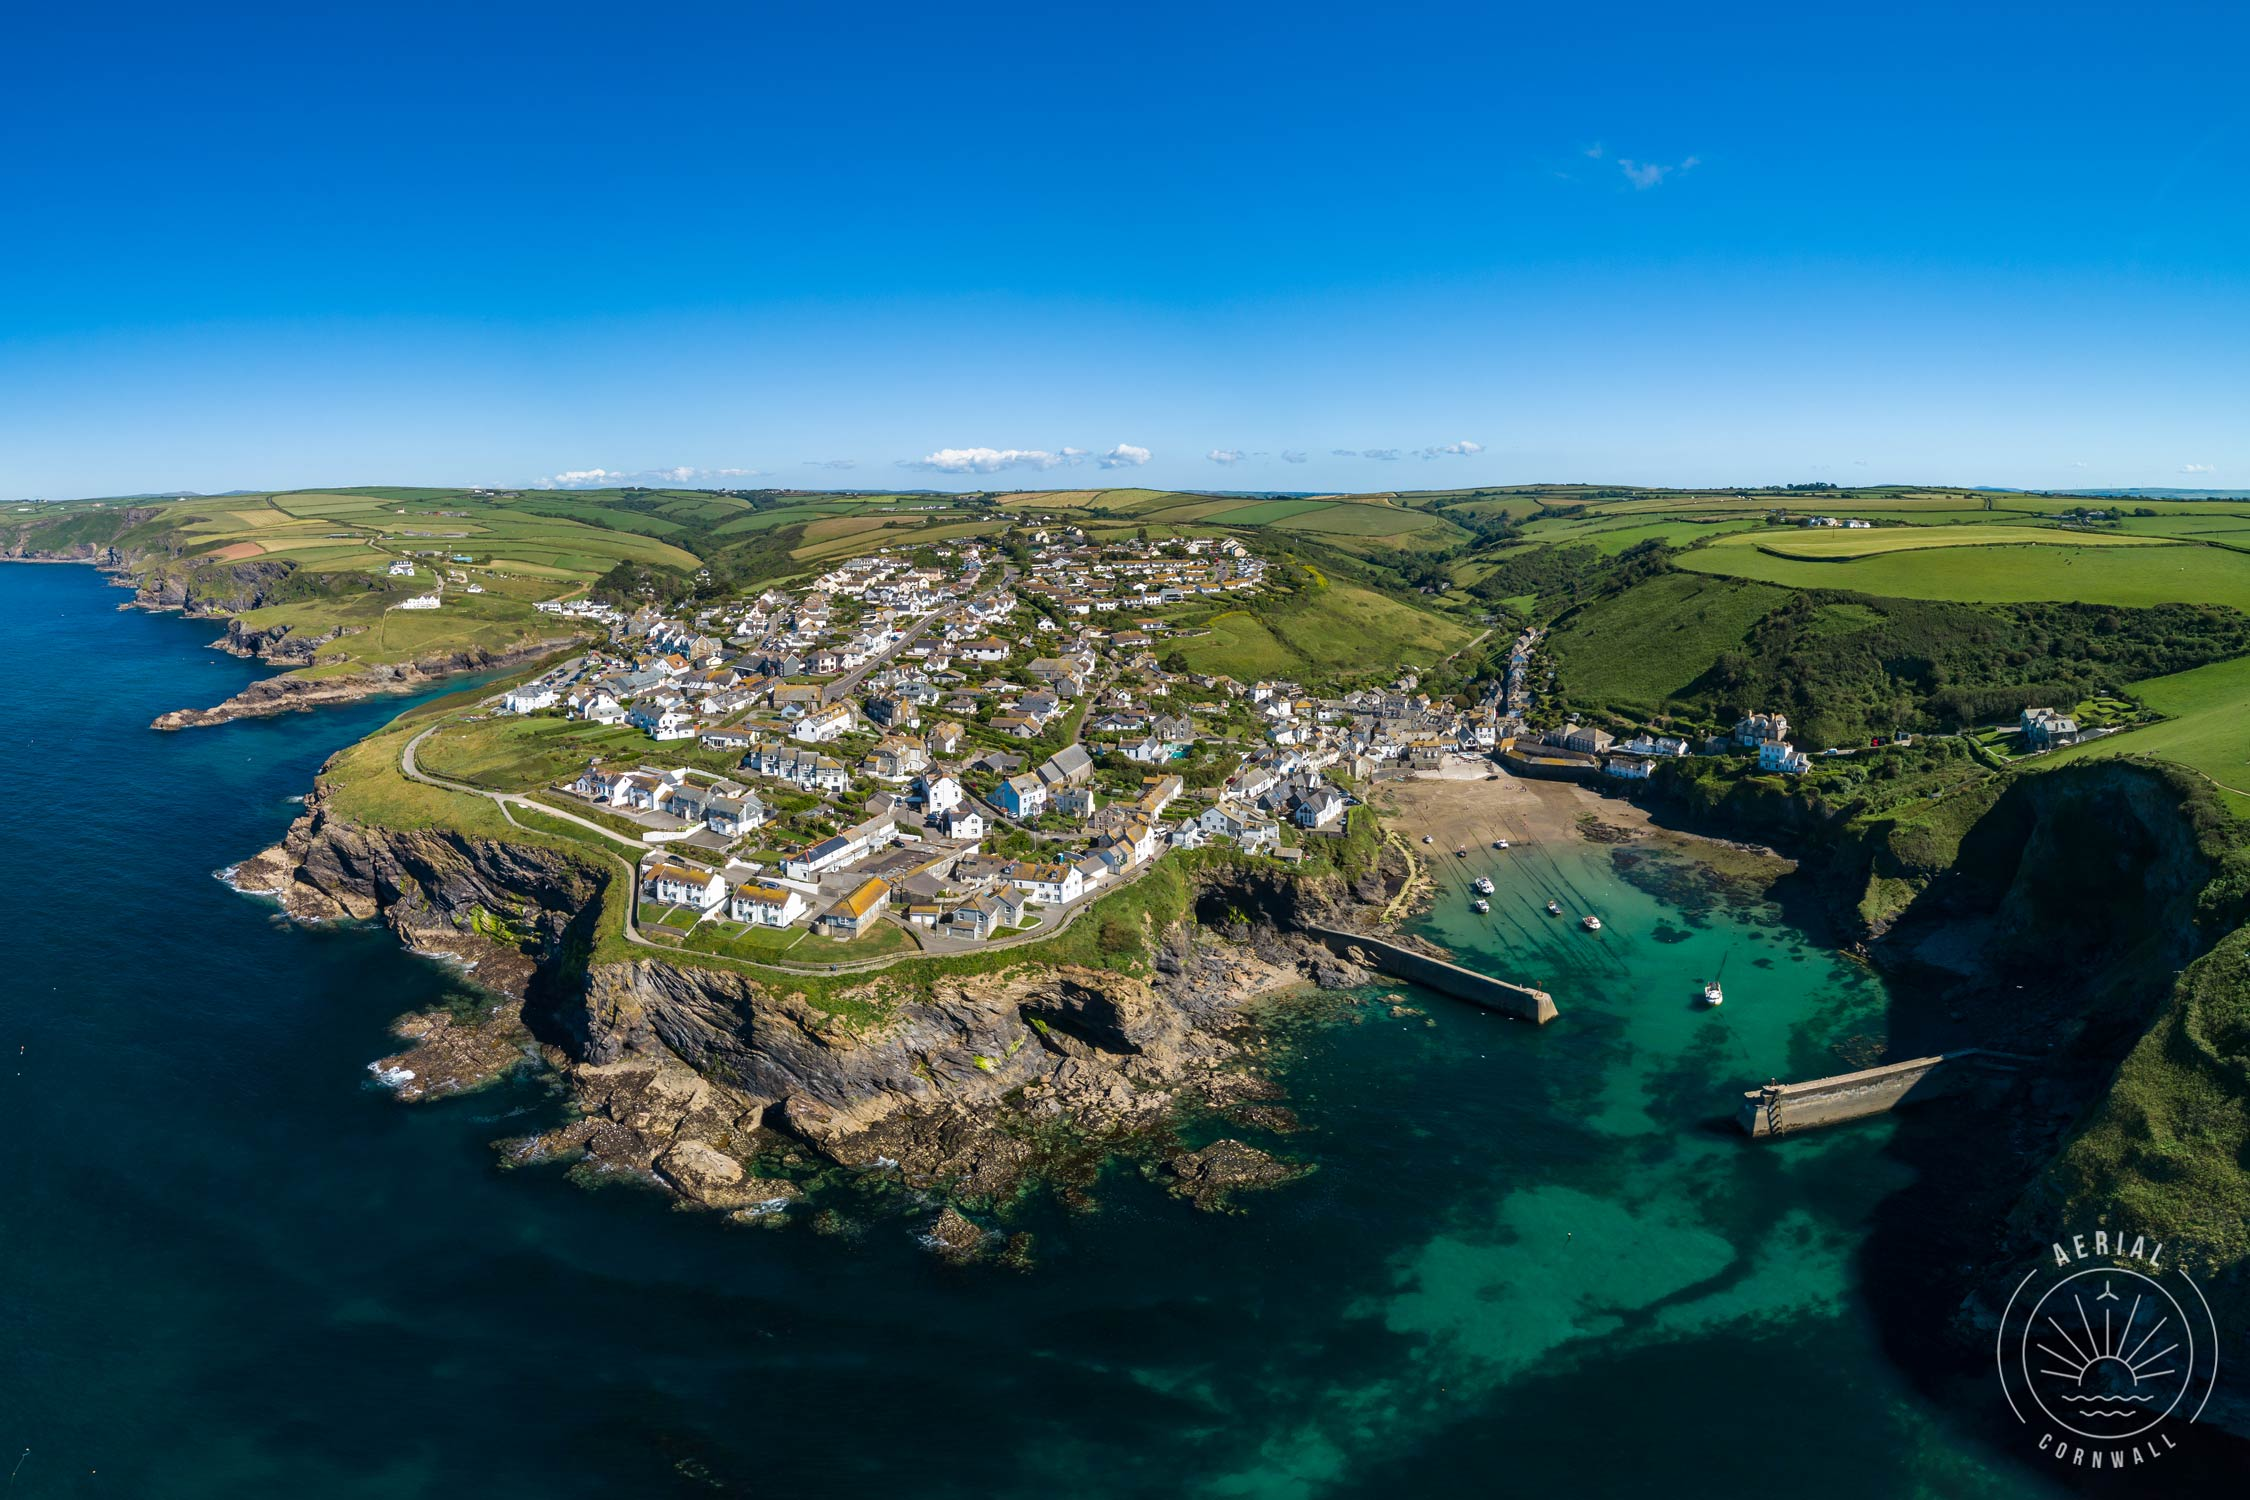 Location: Port Isaac